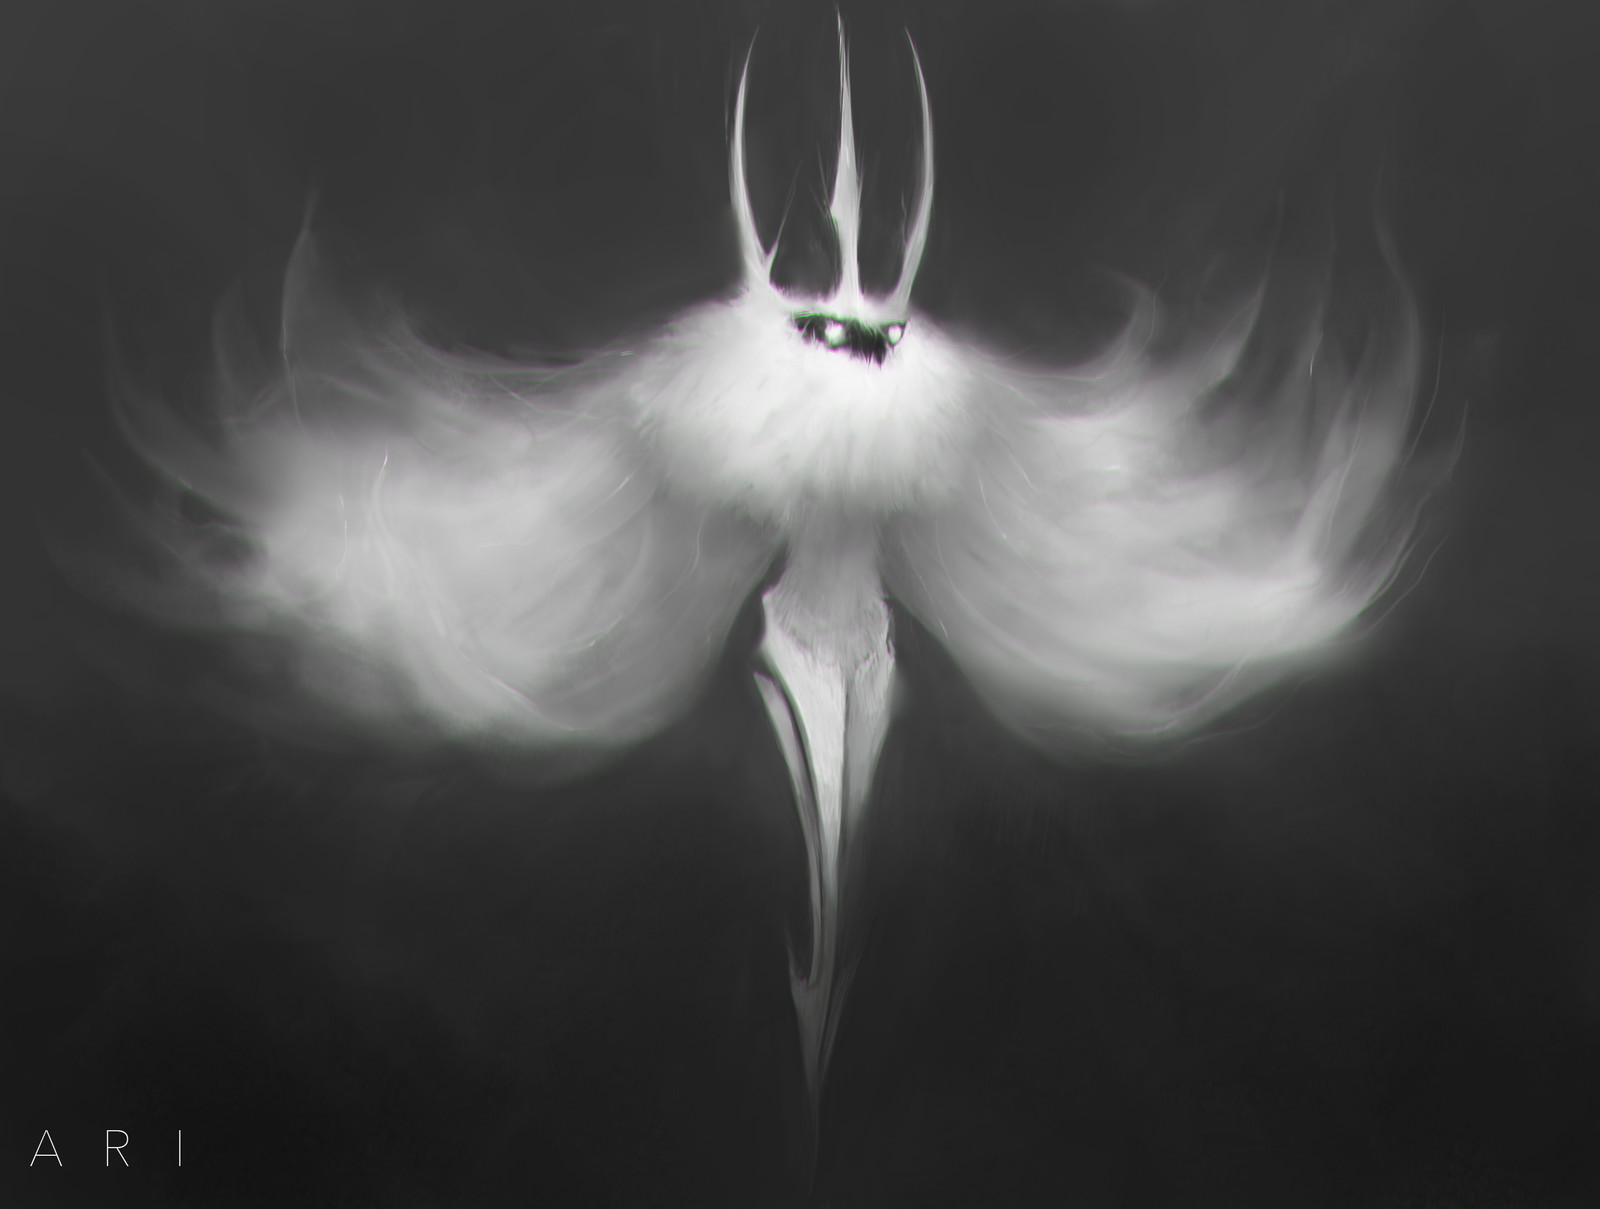 Some Hollow knight Fanarts